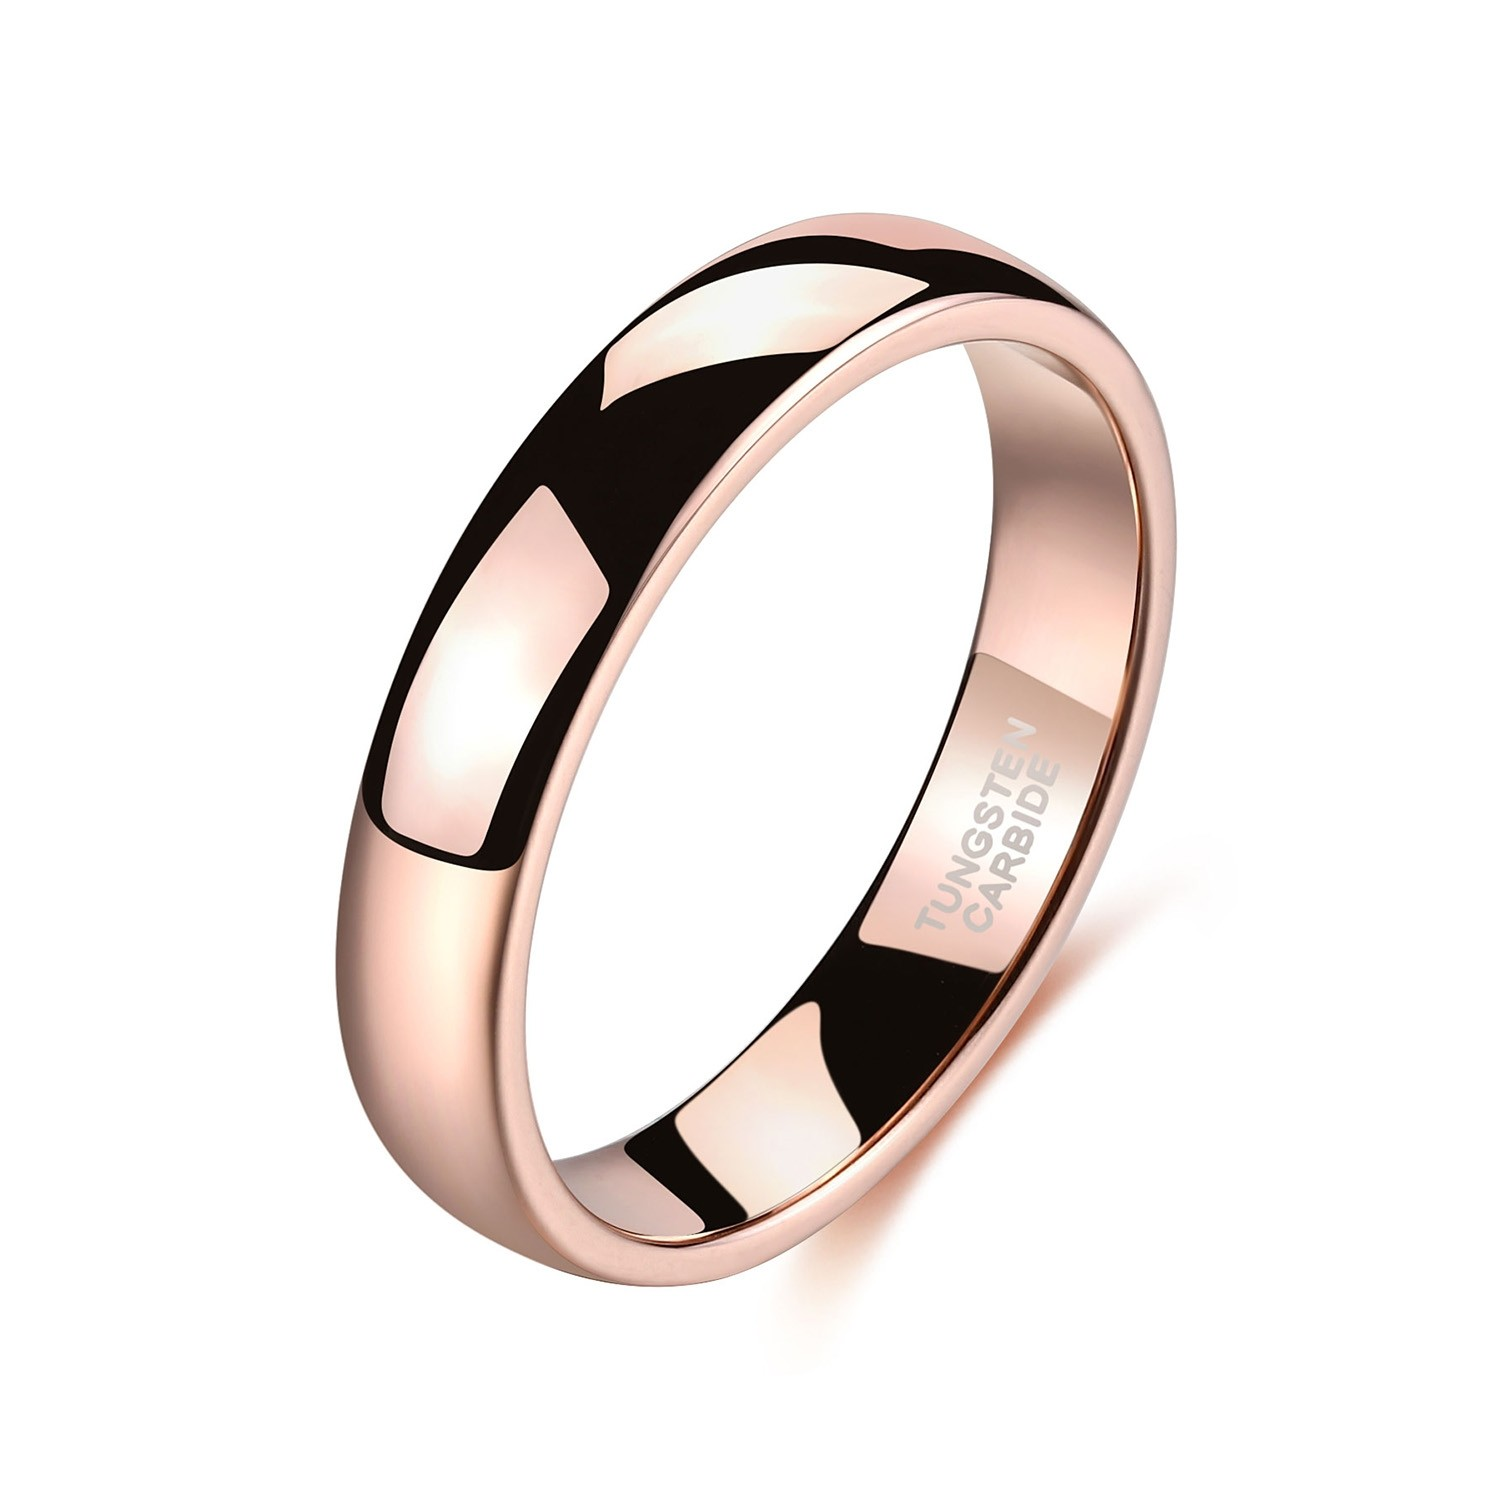 It is a picture of Rose Gold Tungsten Mens Womens Wedding Band Plain High Polished 42mm 42mm